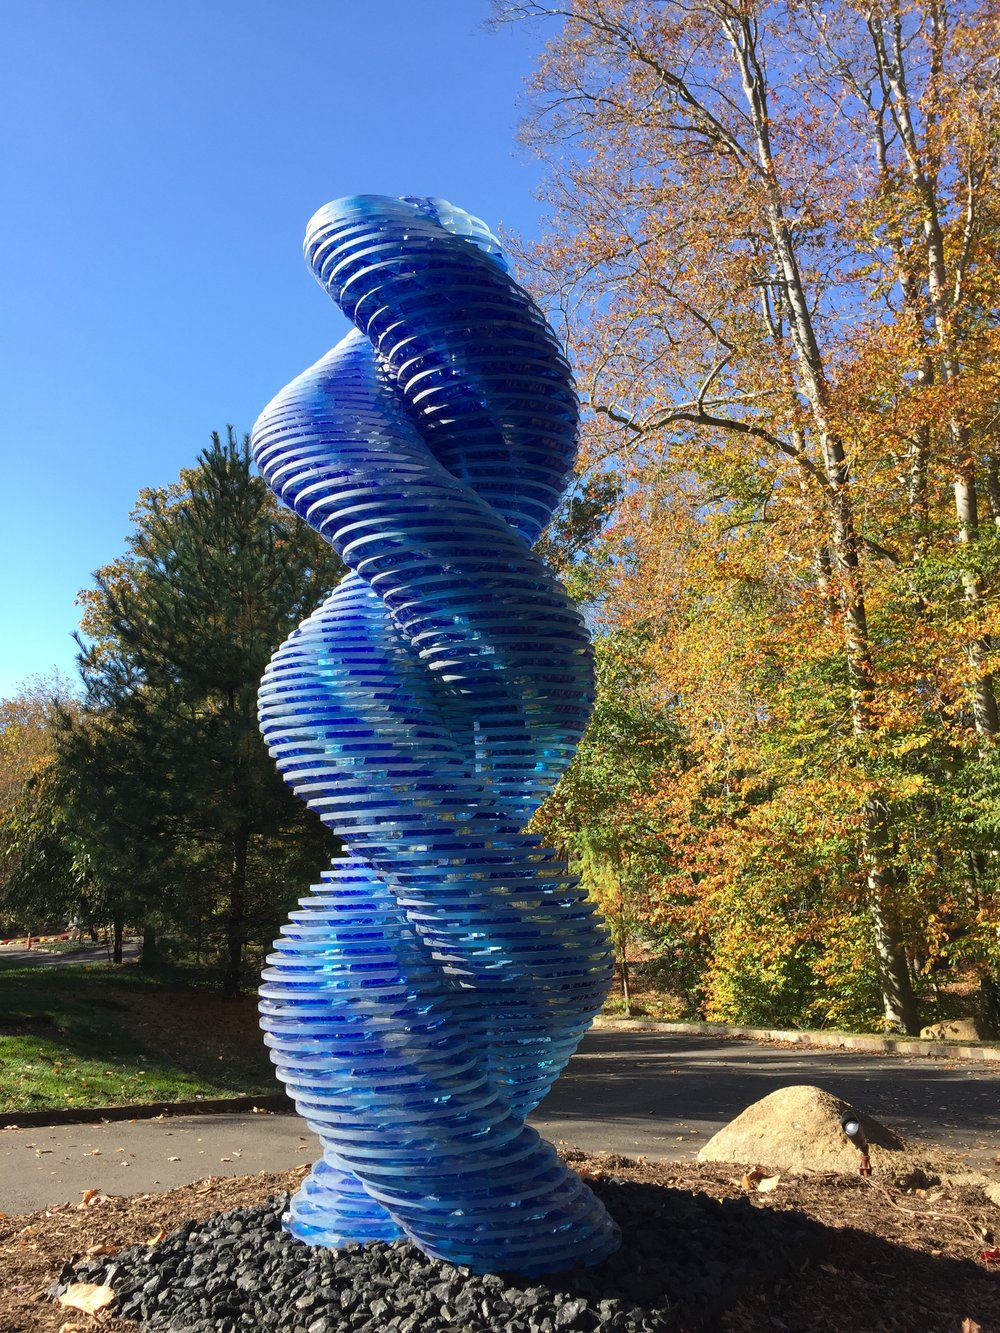 Seven foot twisted blue glass tower, landscape sculpture